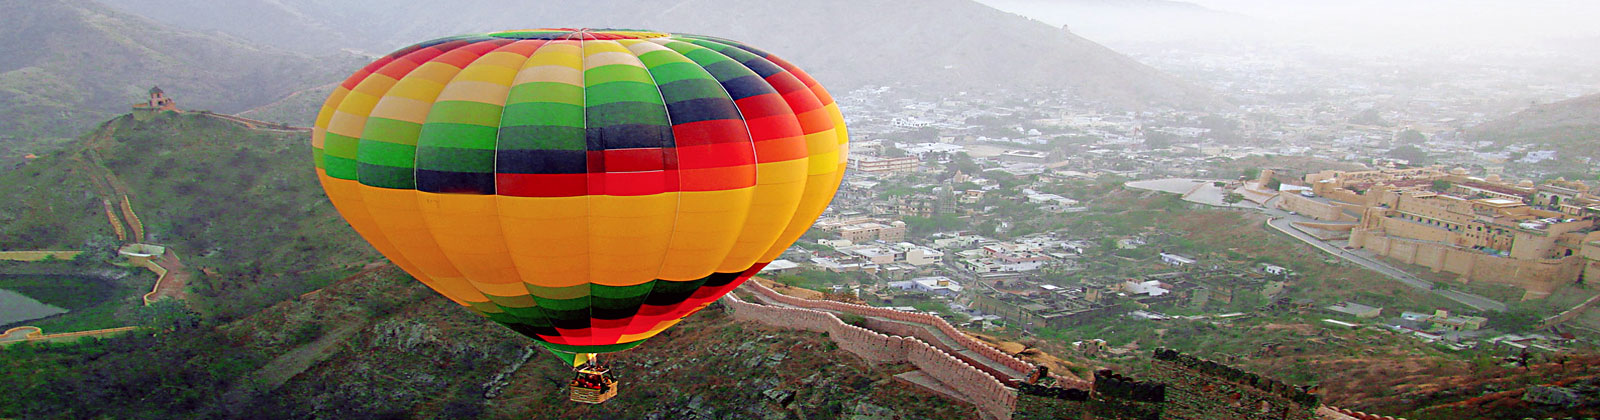 hot air balloon in manali